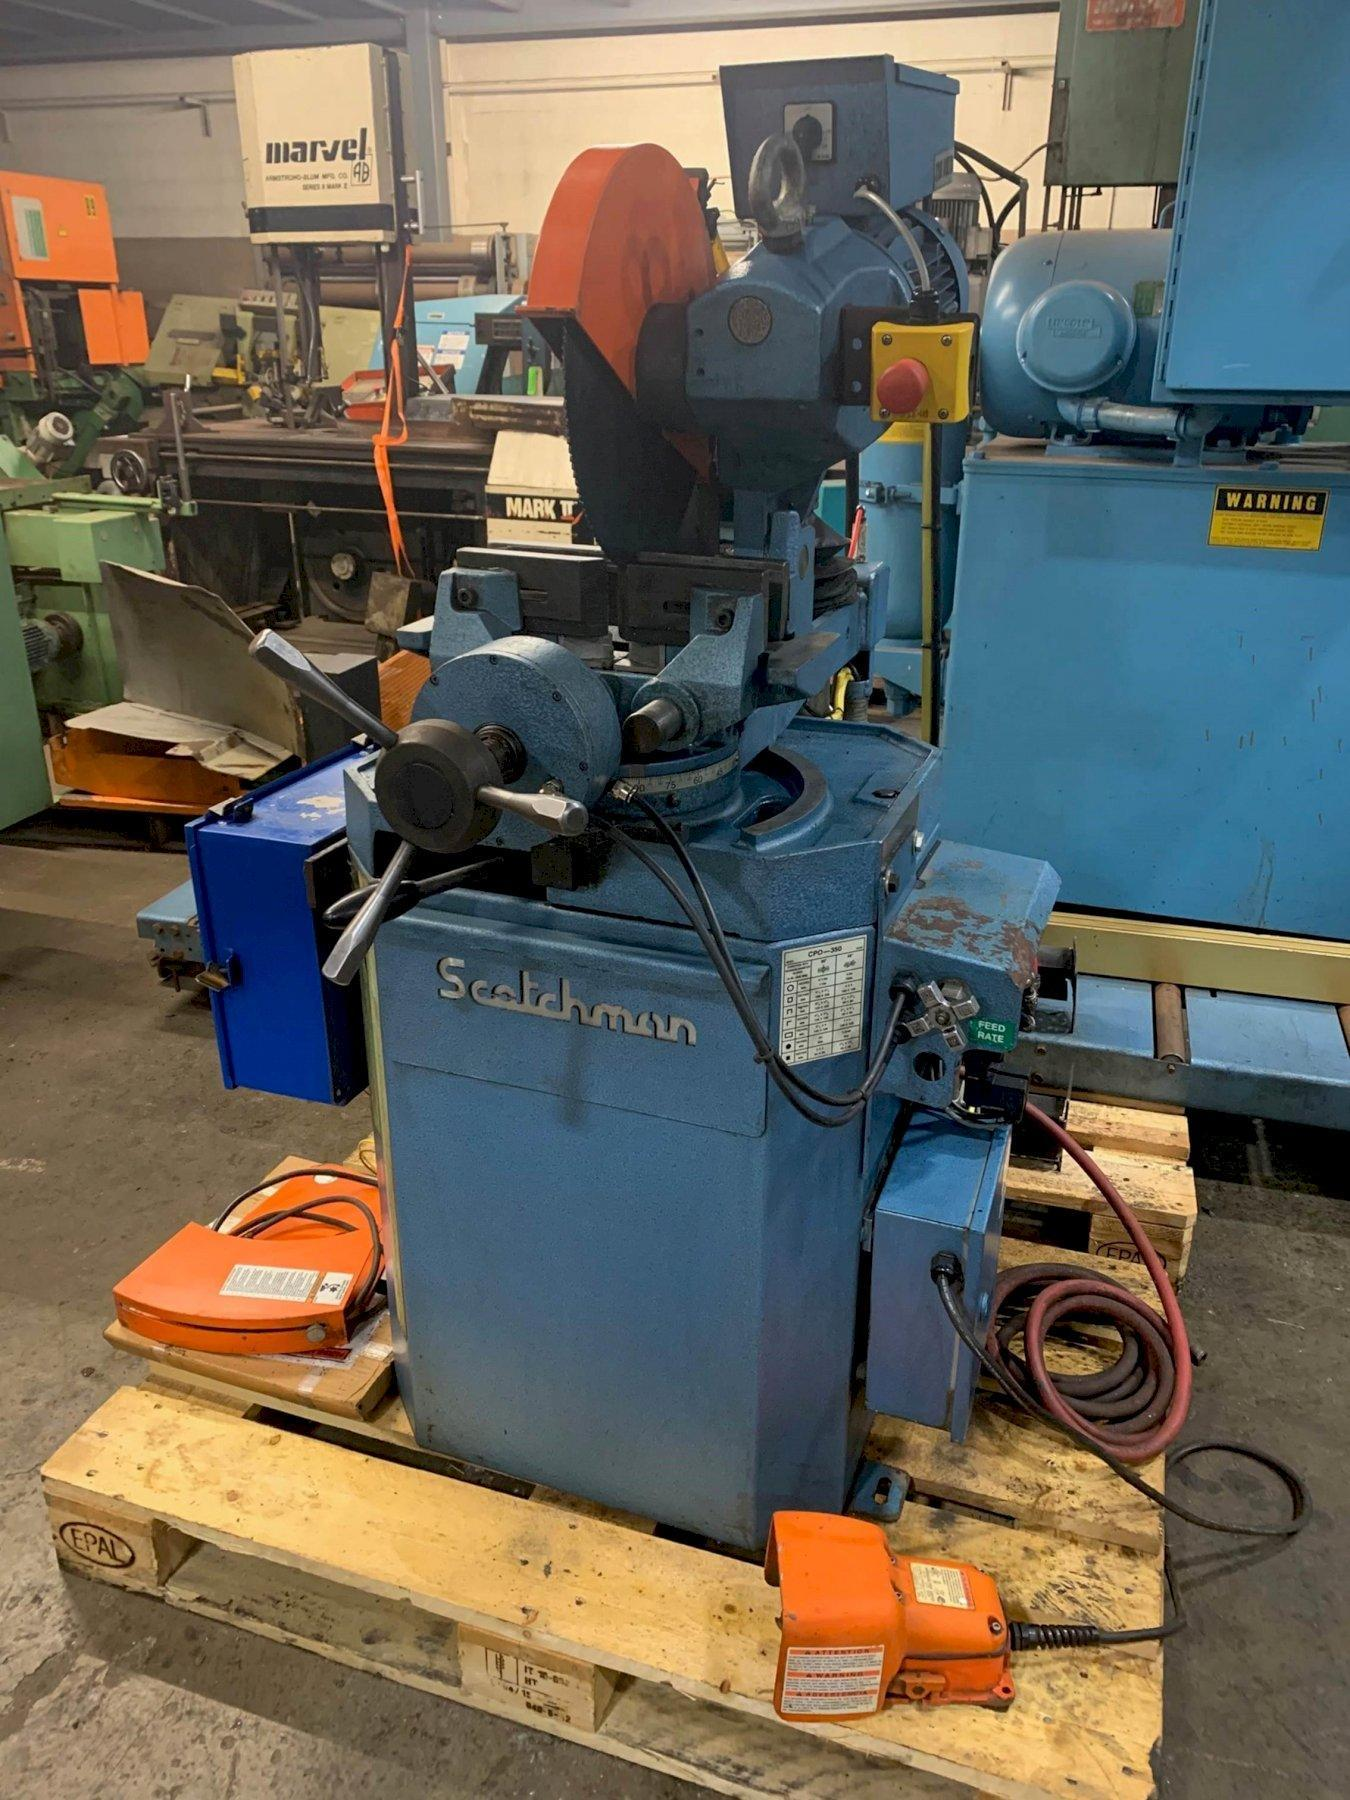 USED SCOTCHMAN SEMI-AUTOMATIC 2-SPEED CIRCULAR COLDSAW MODEL CPO 350 LTPKPD,  Stock # 10821, Year 2017